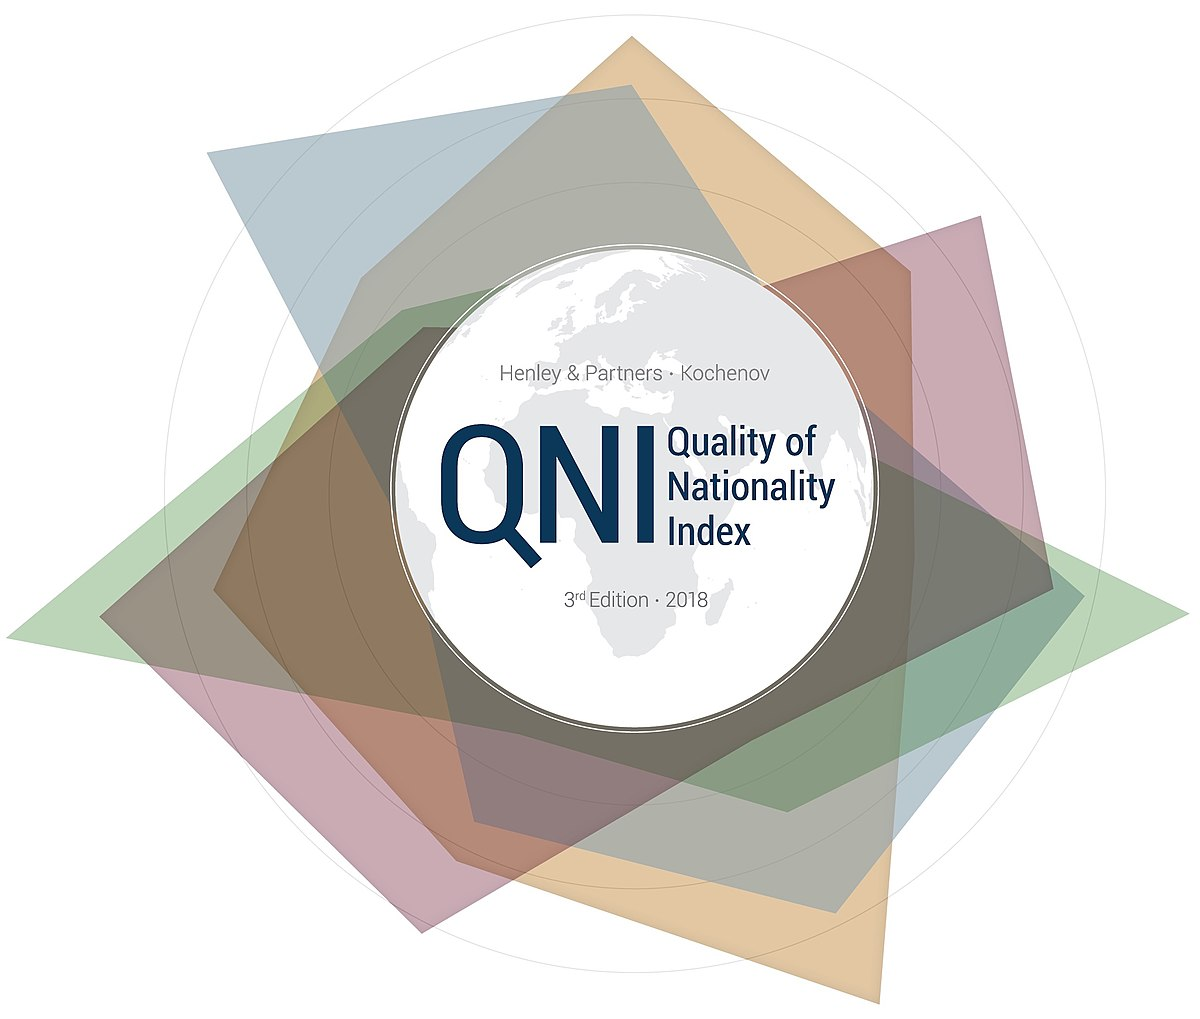 The Quality of Nationality Index - Wikipedia